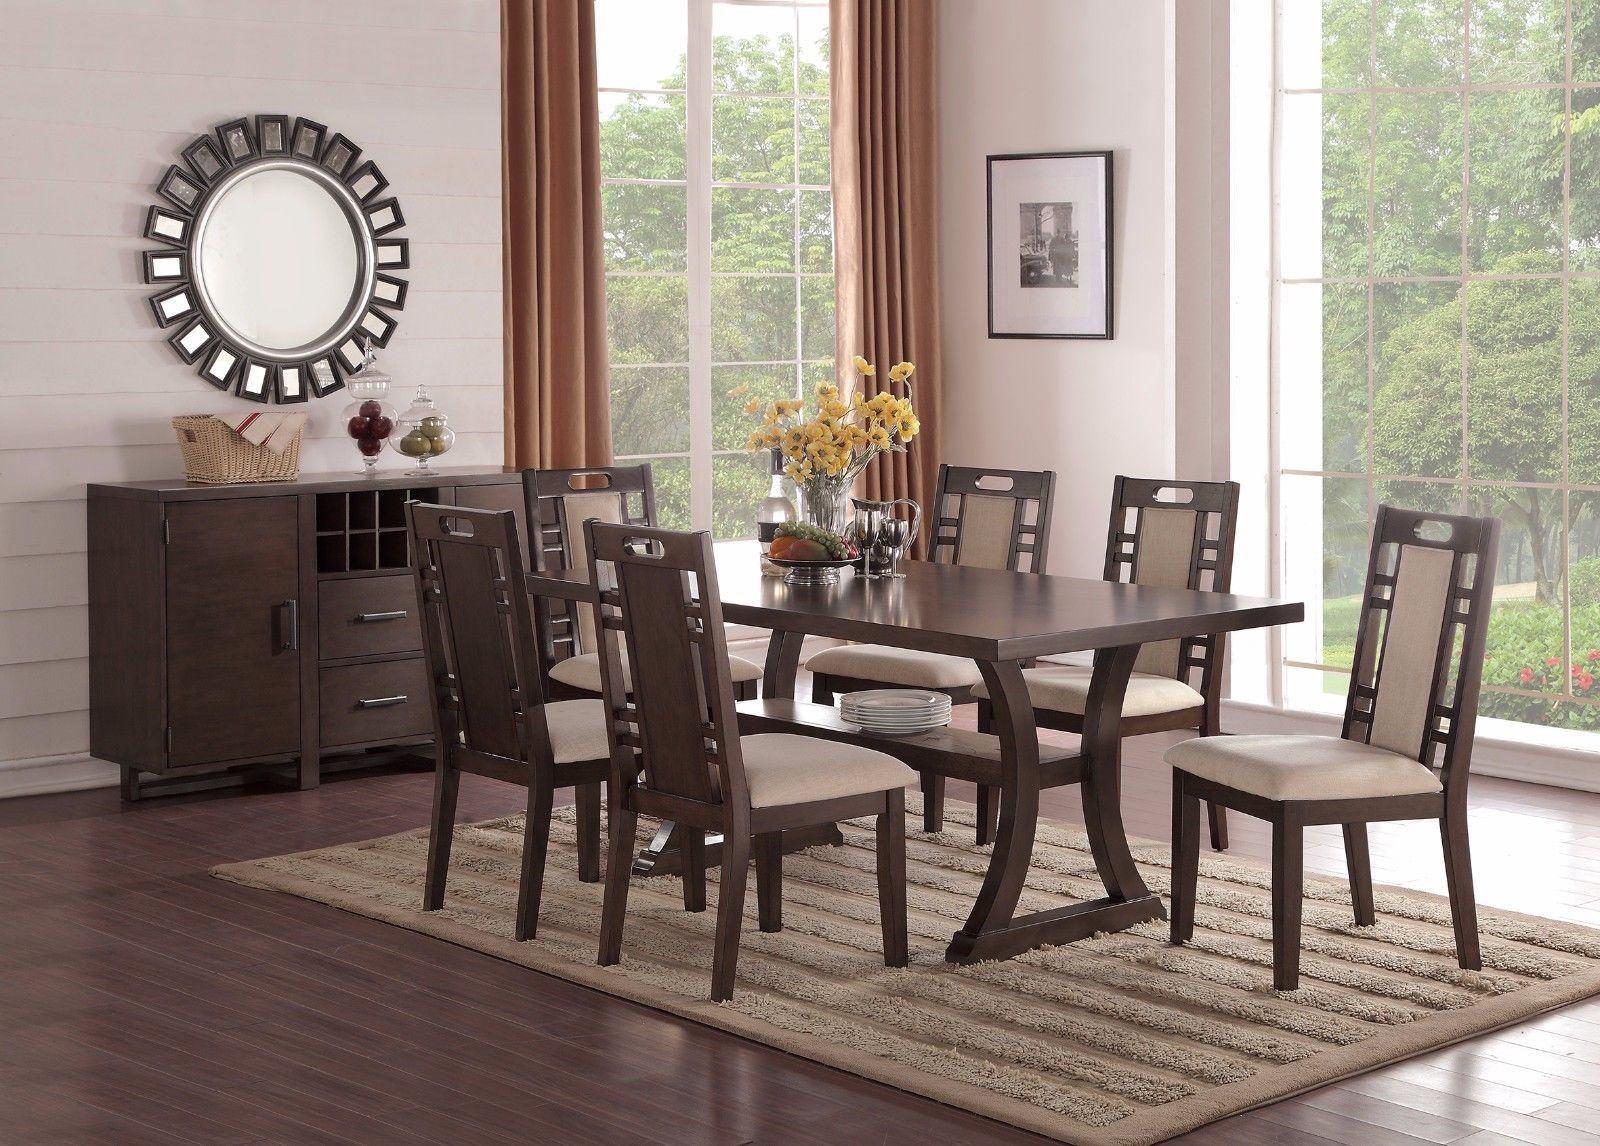 formal look earthy grey hues padded chairs dining table w curved legs 7pc set